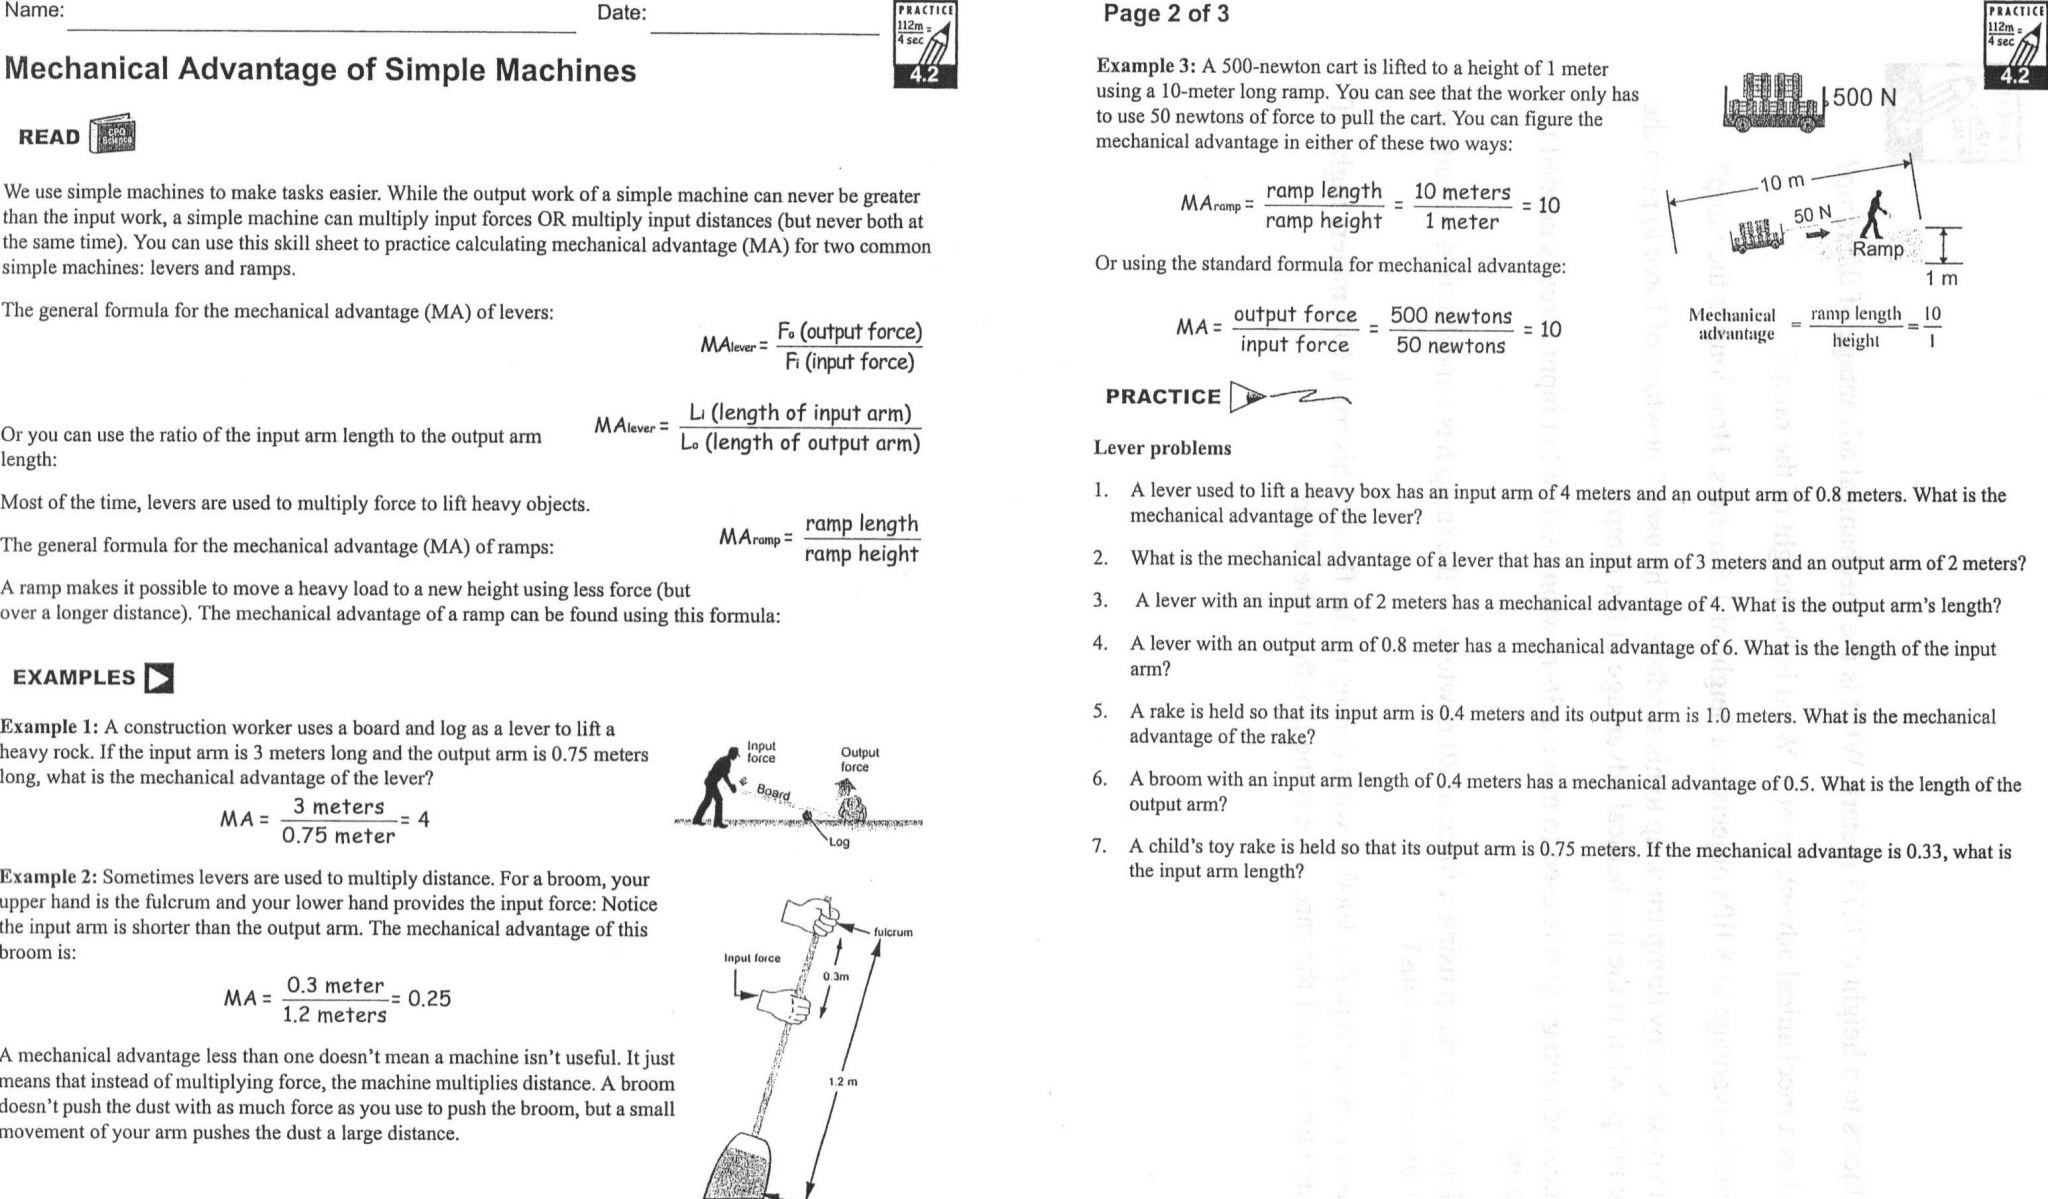 Nuclear Science Merit Badge Worksheet Answers